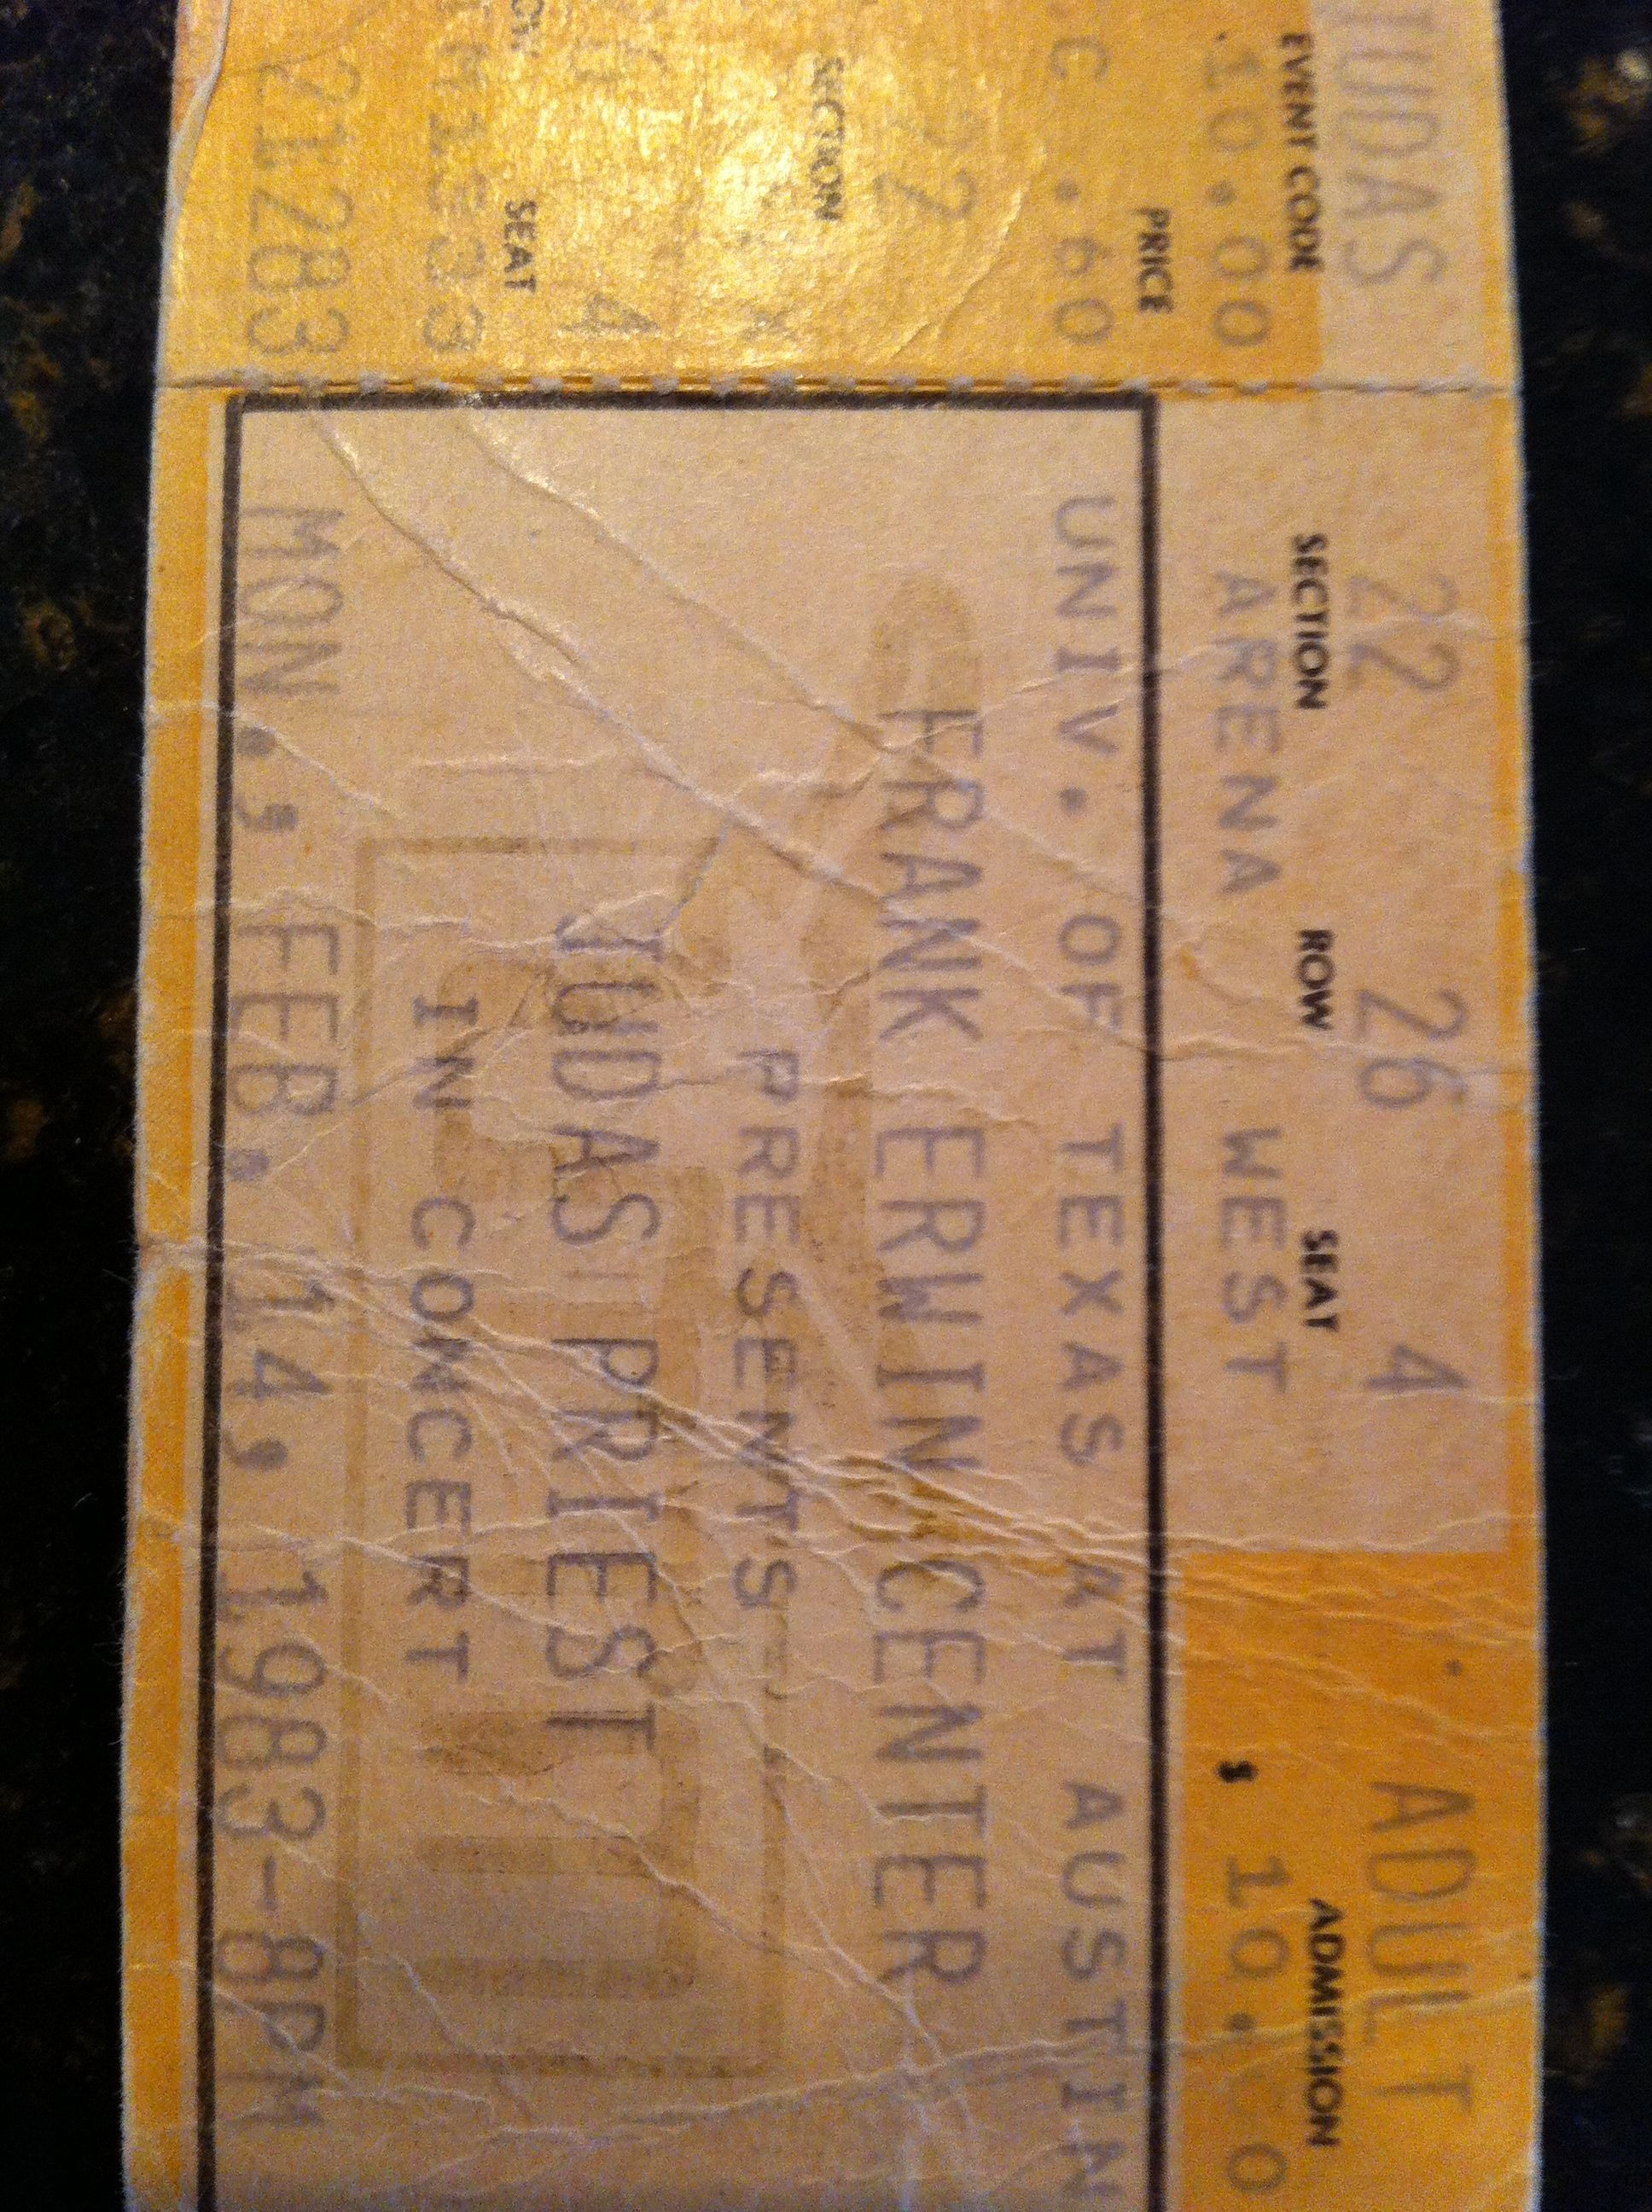 Ticket stub from the Judas Priest concert on February 14th 1983 at the Frank Erwin Center in Austin This was the Screaming for Vengeance Tour